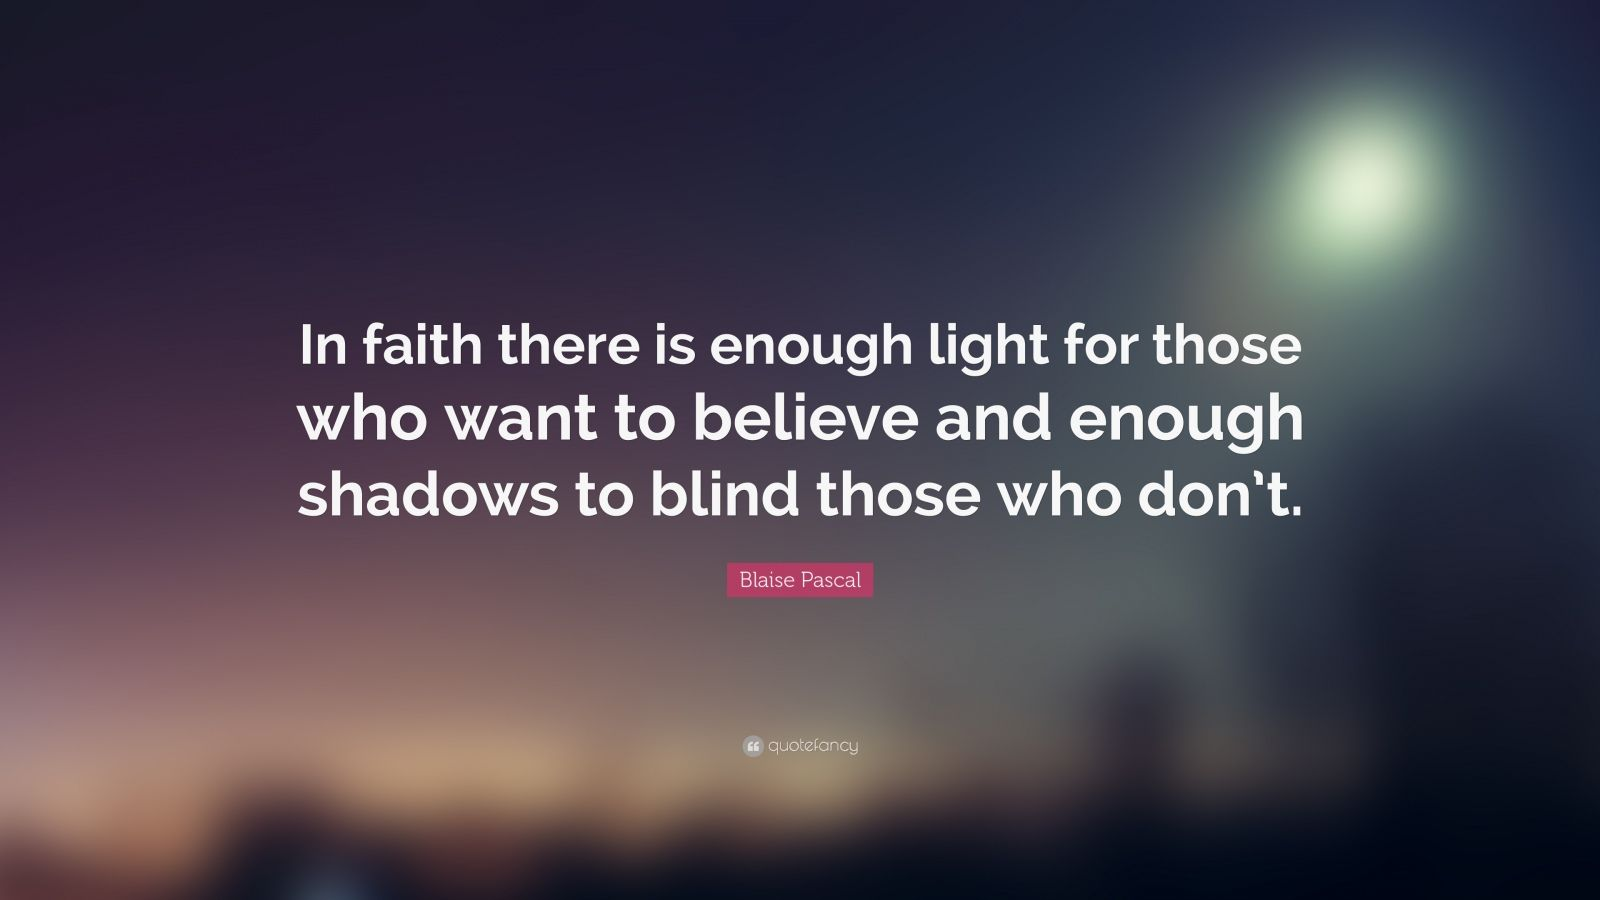 Nick Vujicic Quotes Wallpaper Blaise Pascal Quote In Faith There Is Enough Light For